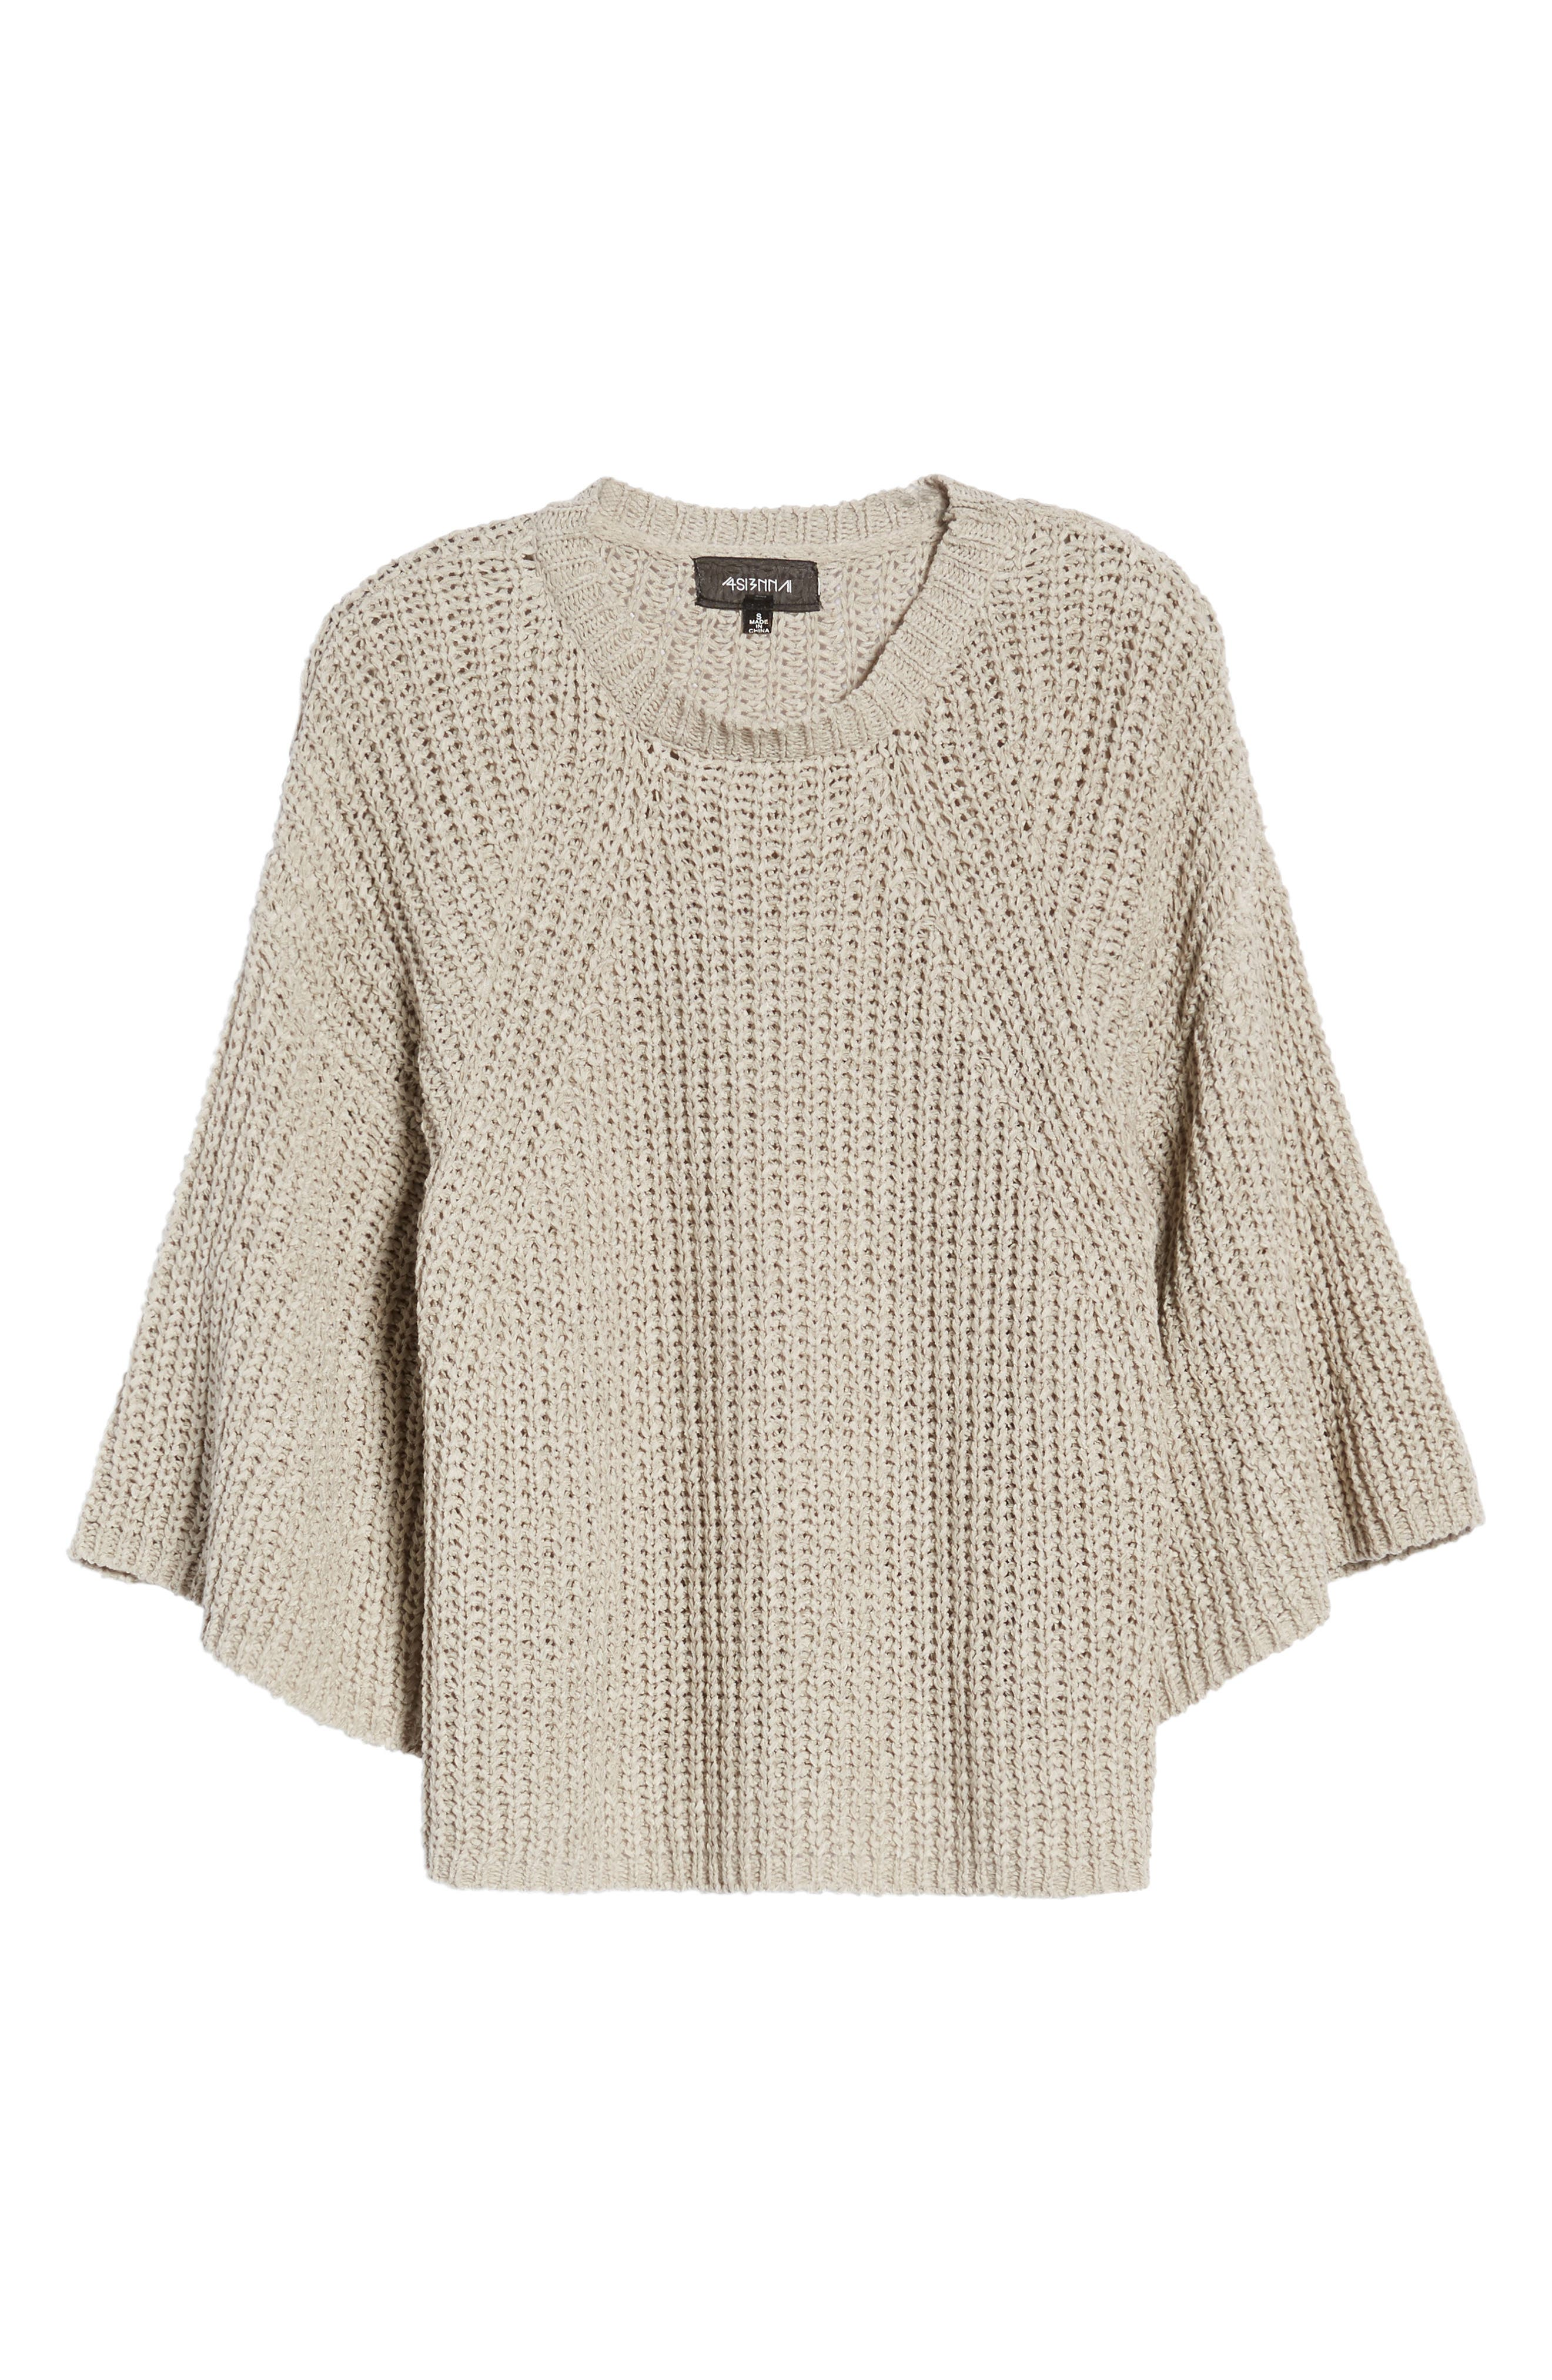 Bell Sleeve Sweater,                             Alternate thumbnail 7, color,                             280